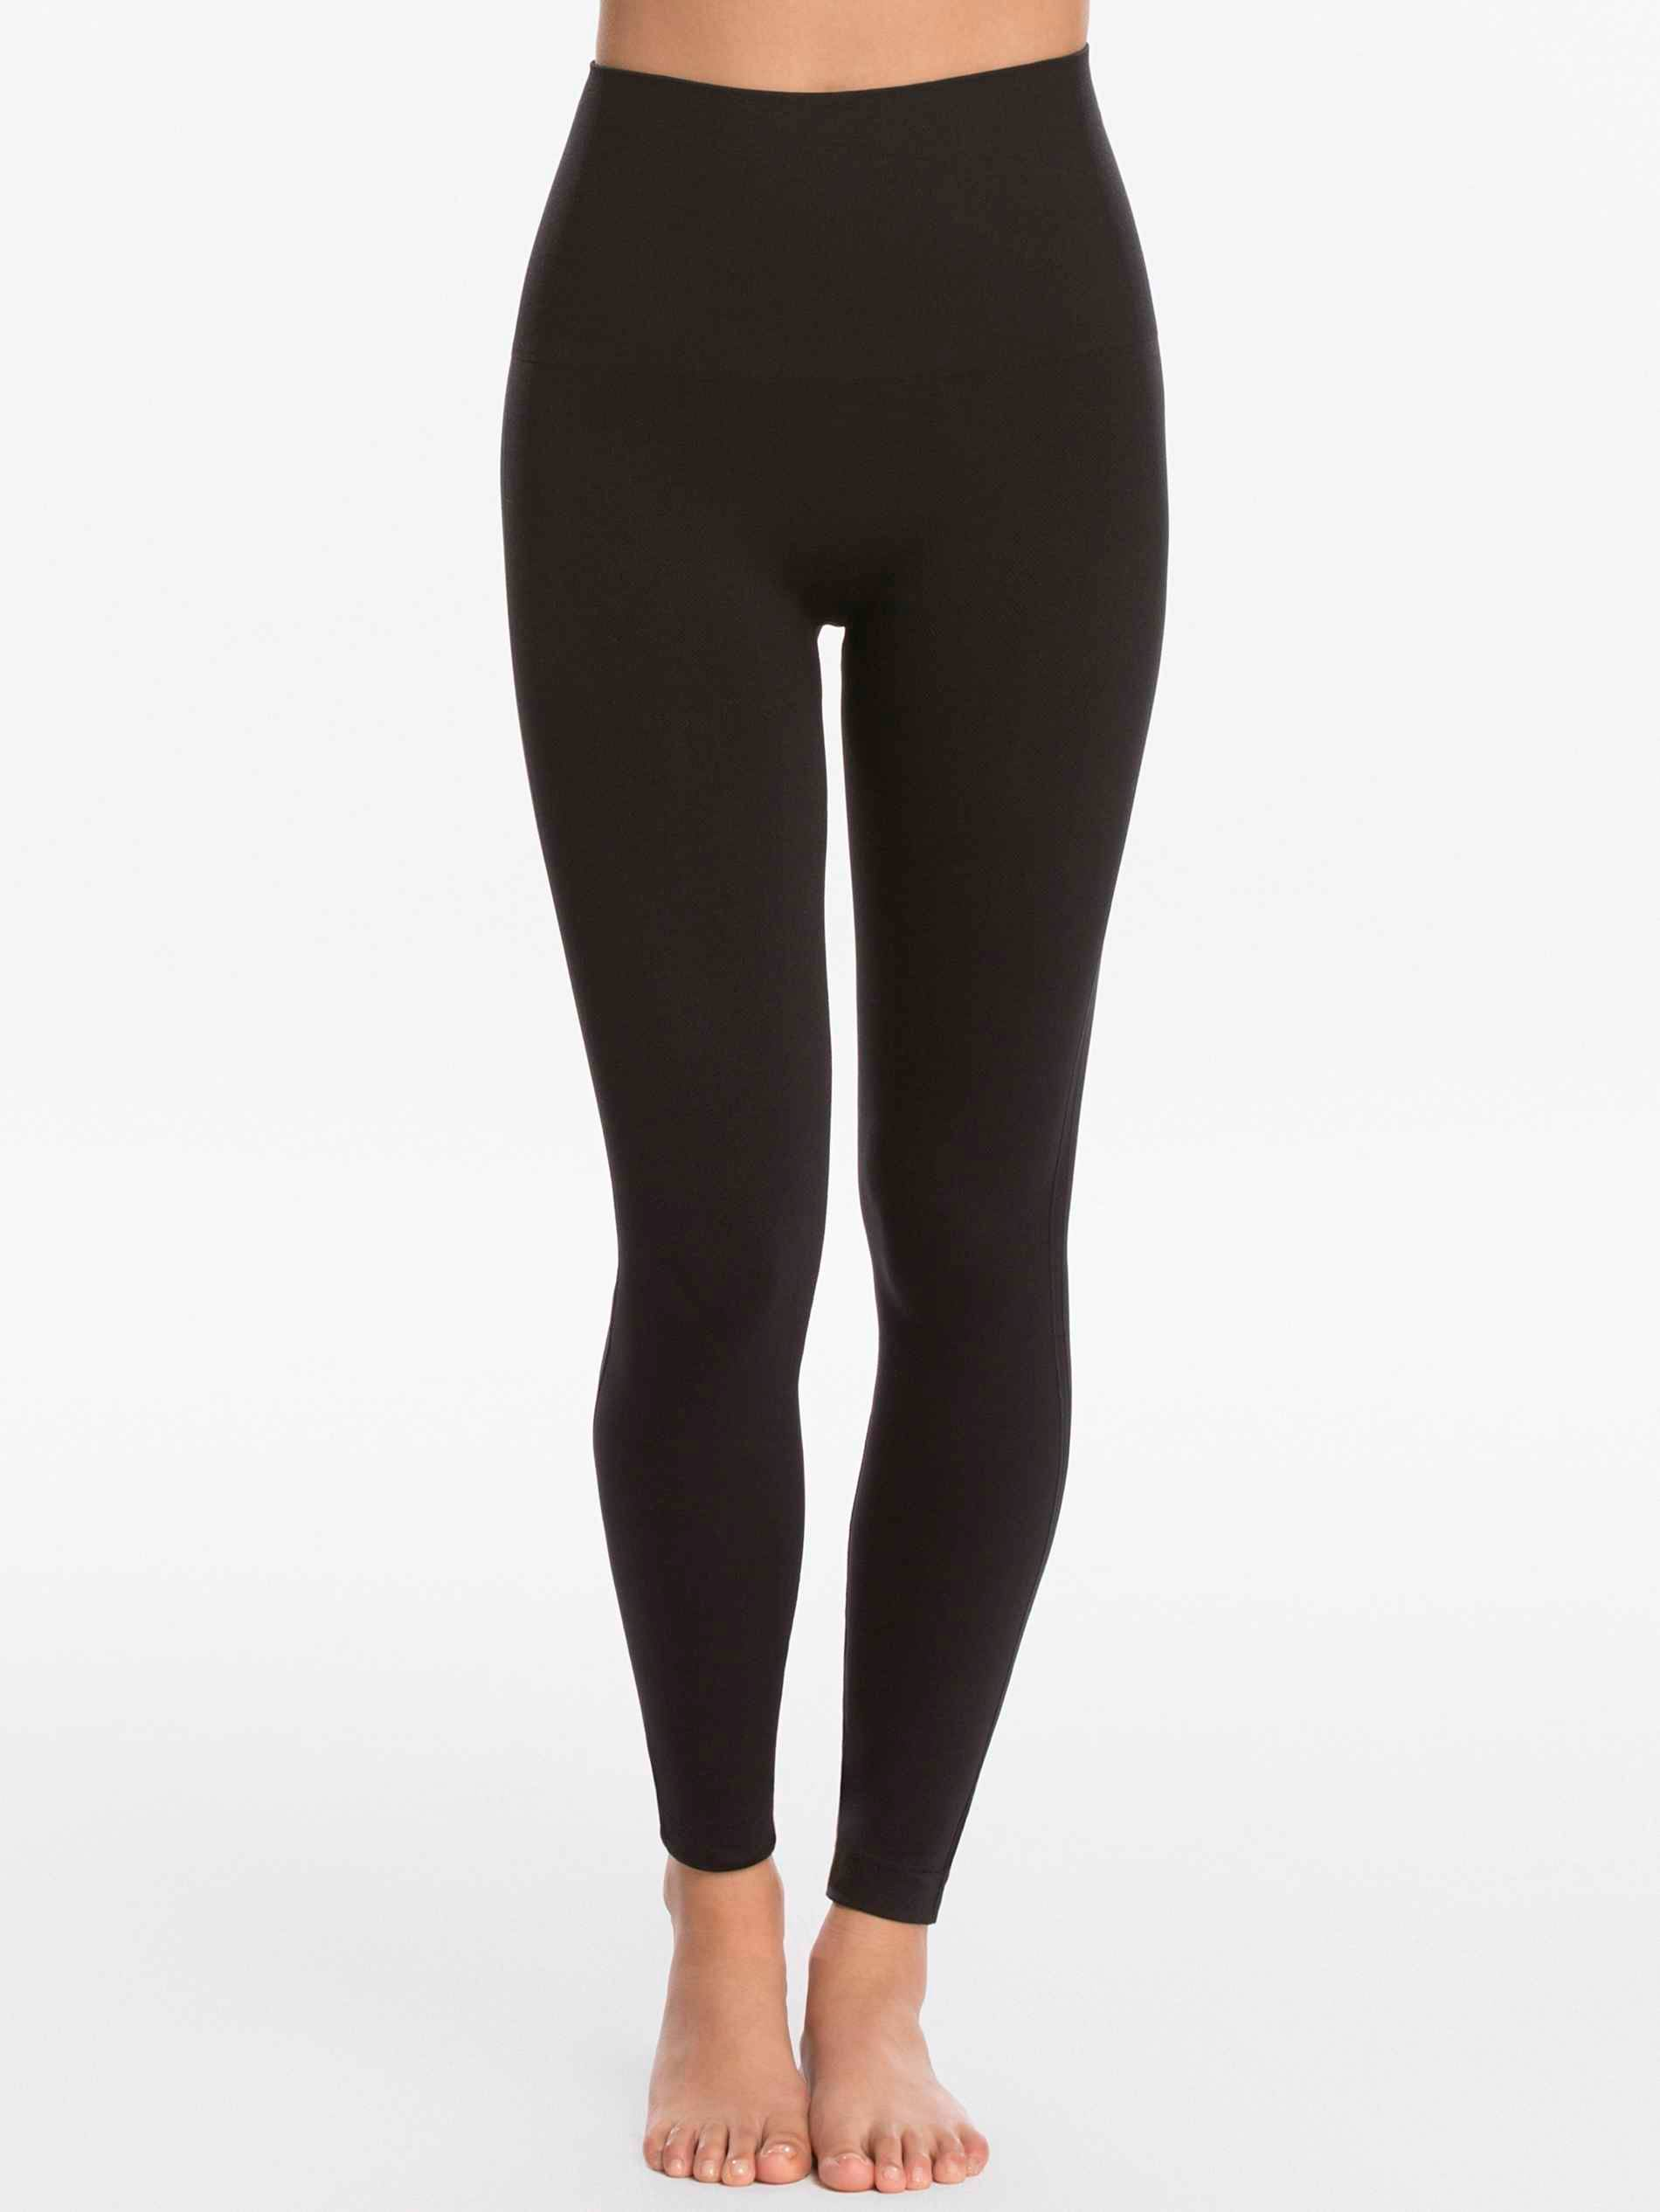 Spanx Look at Me Now Tummy Control Leggings Pants - Black, X-Large